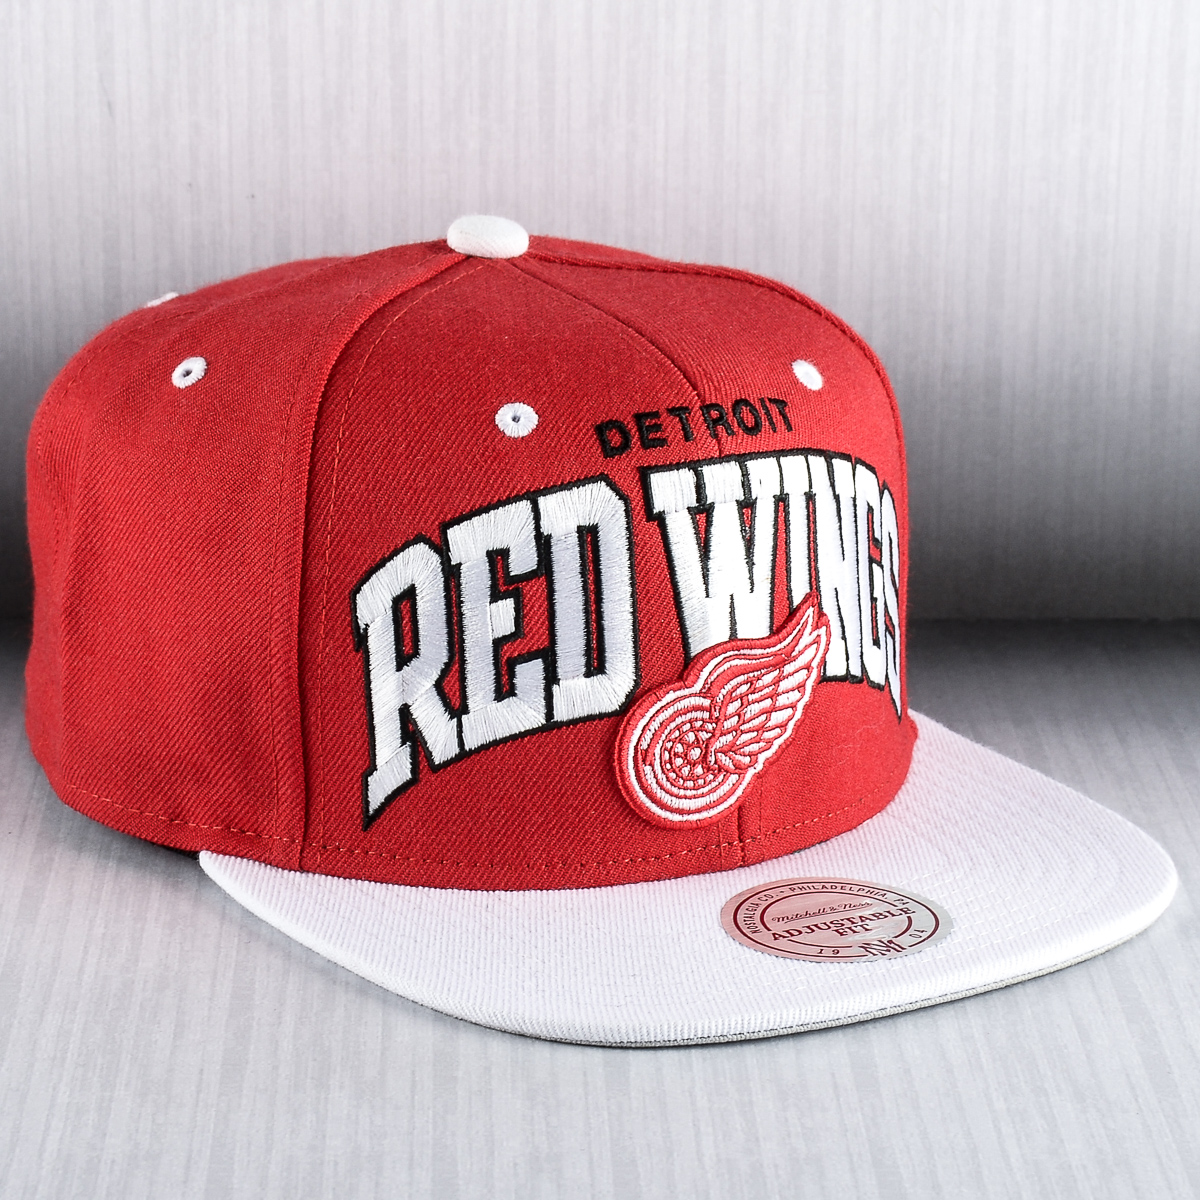 on sale 0f2f8 d3745 ... authentic mitchell ness nhl detroit red wings team arch snapback cap  4cc0c ec60e ...